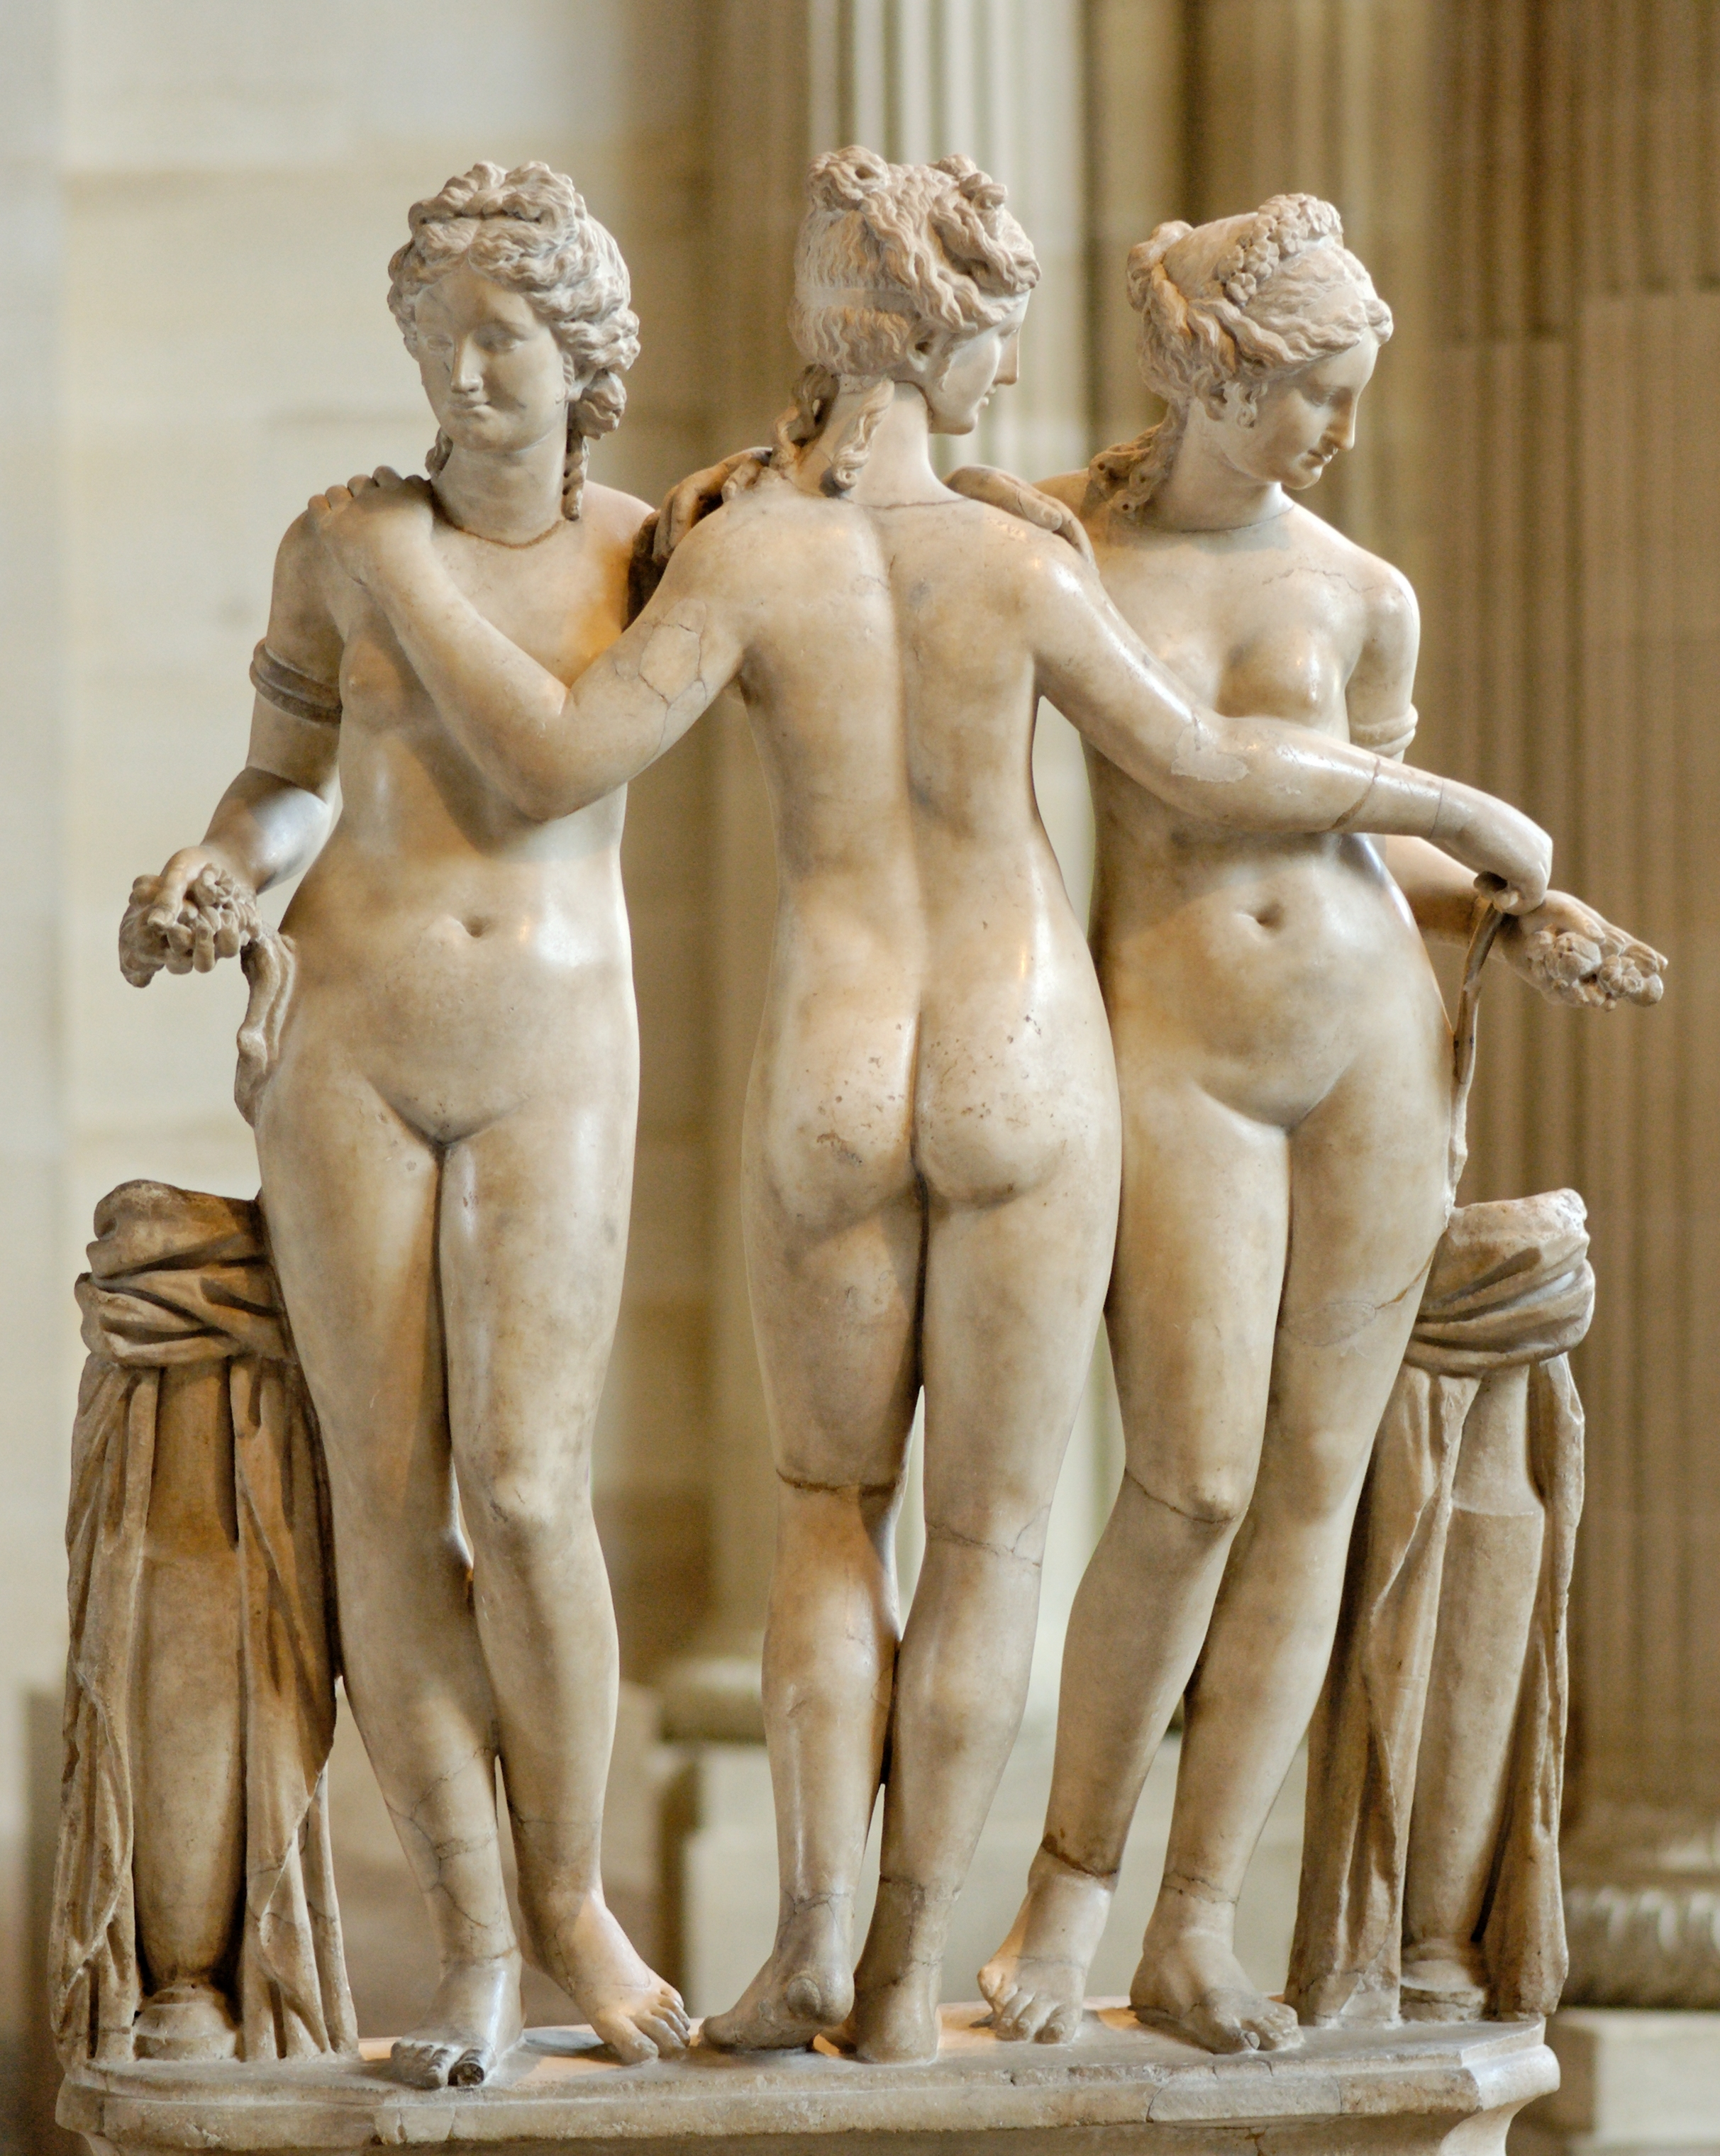 Three muses + nude photography